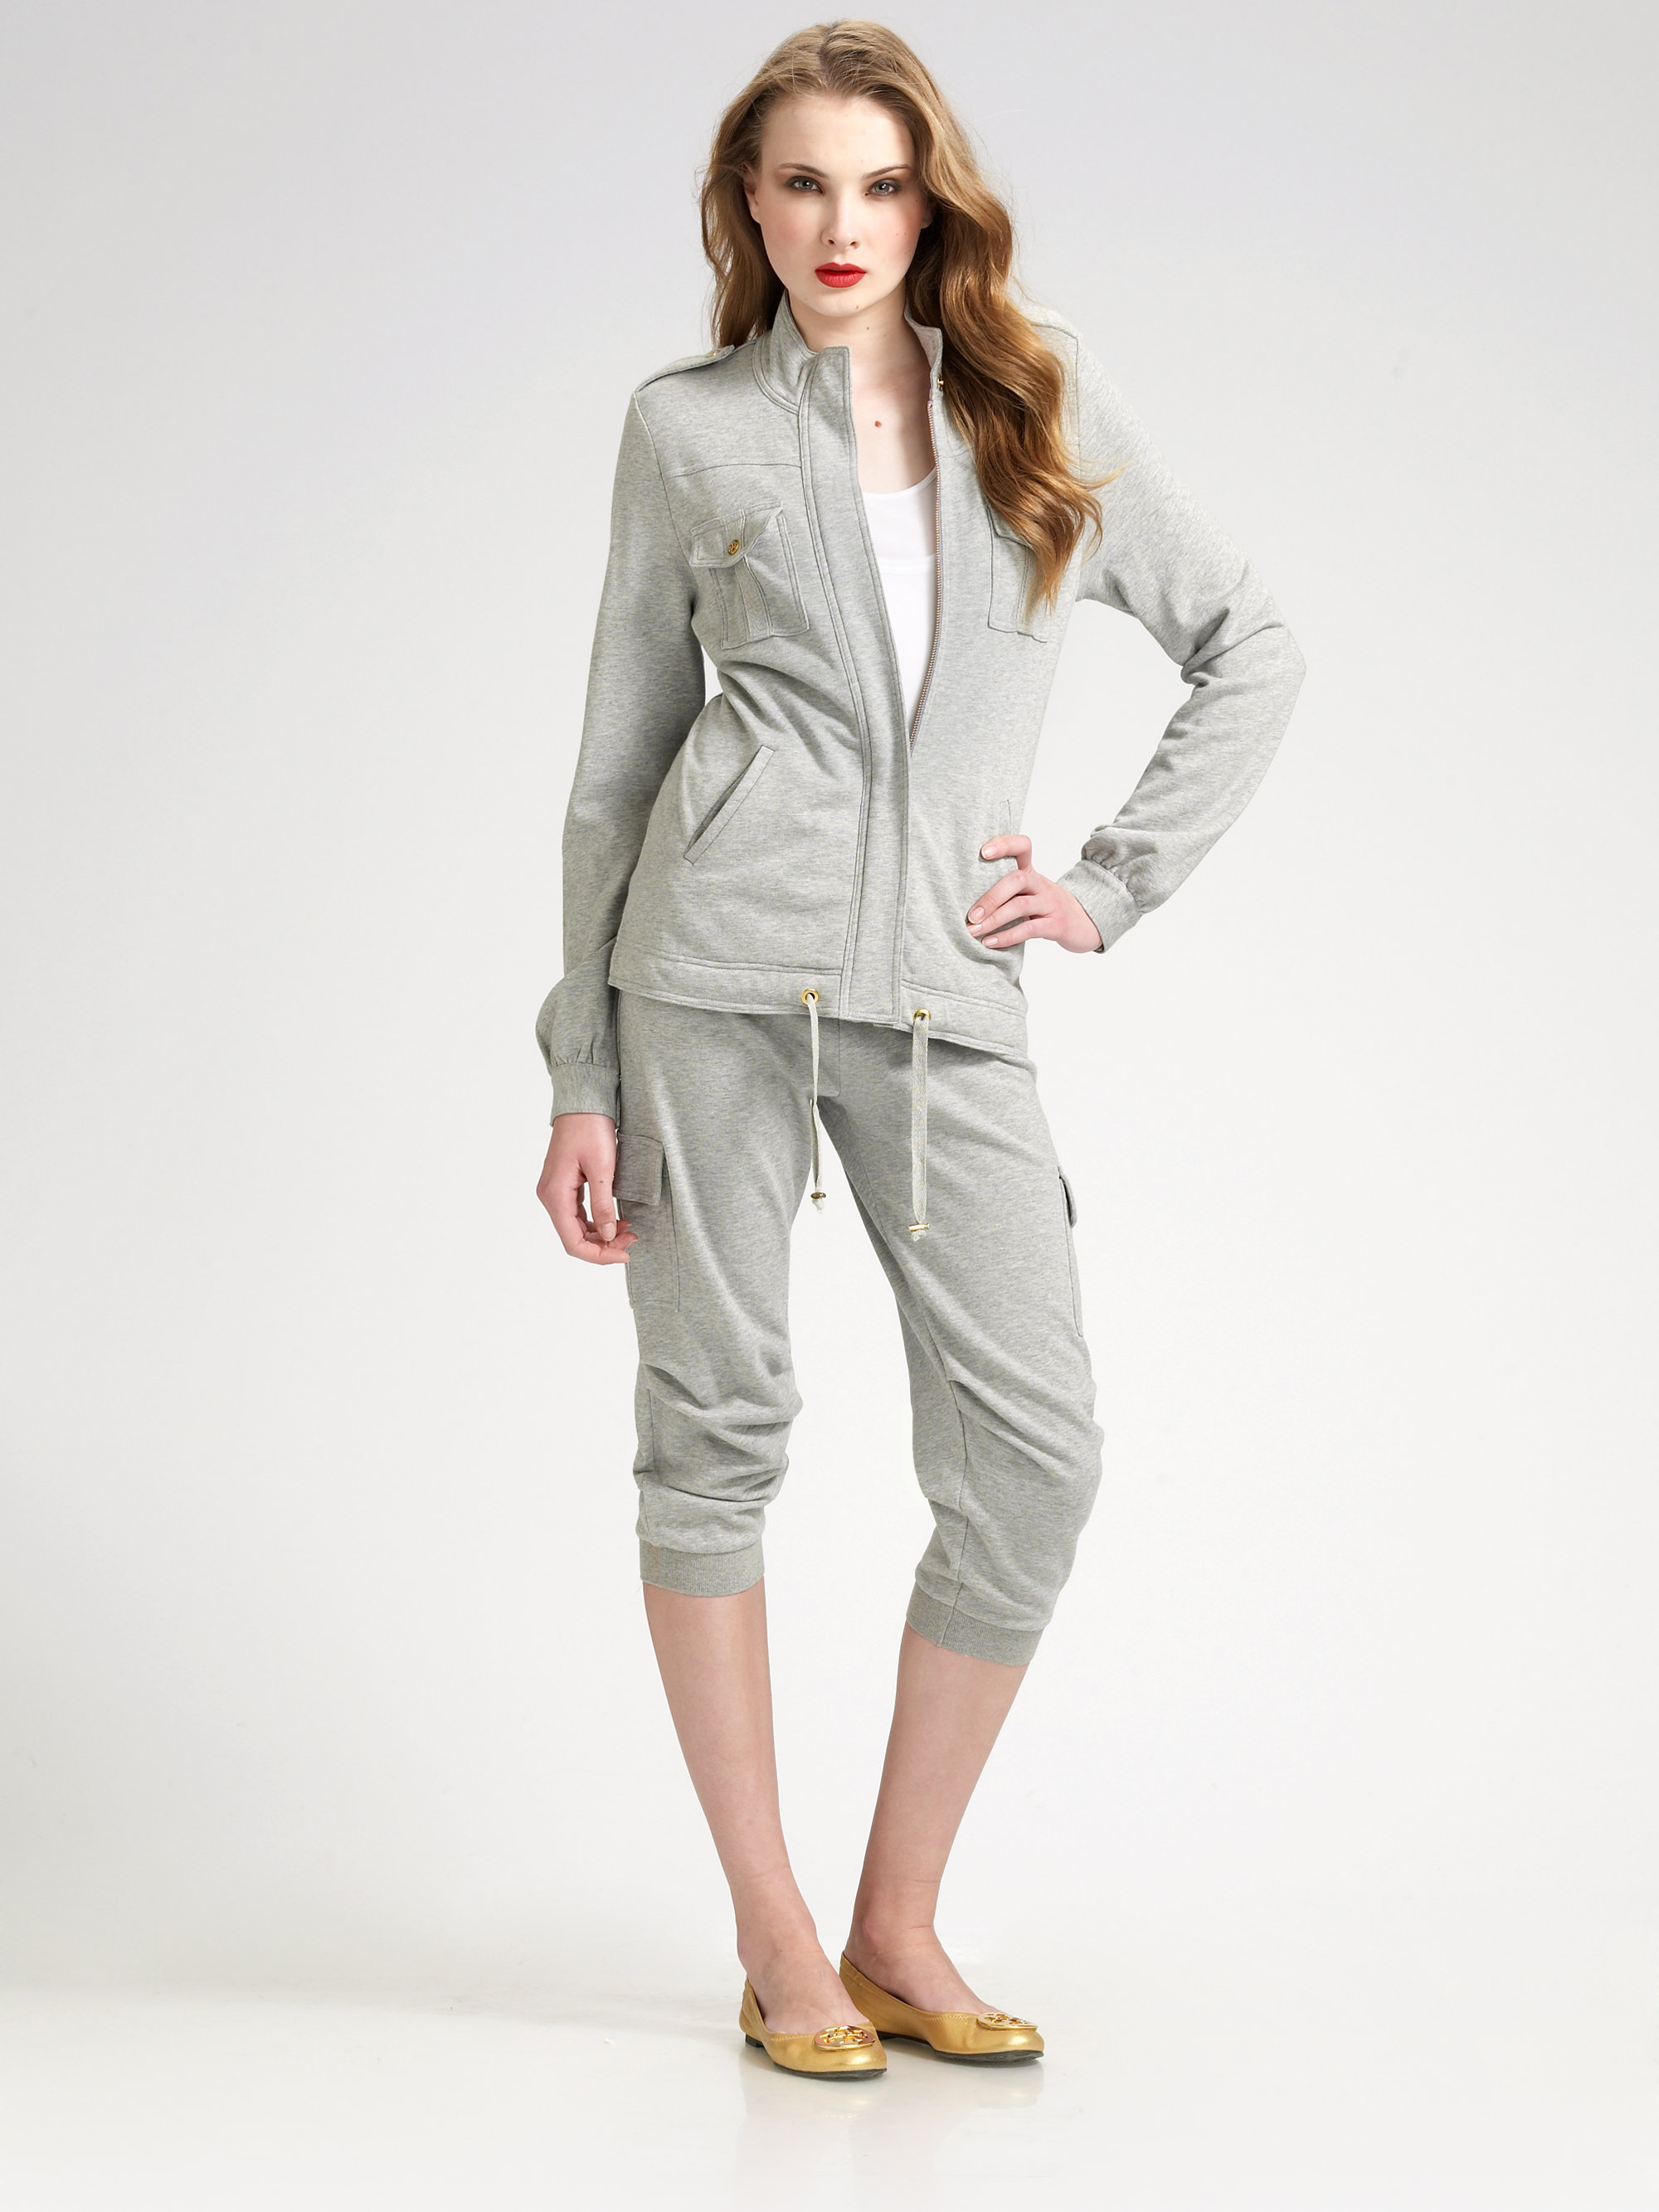 tory burch halite french terry jacket in gray lyst